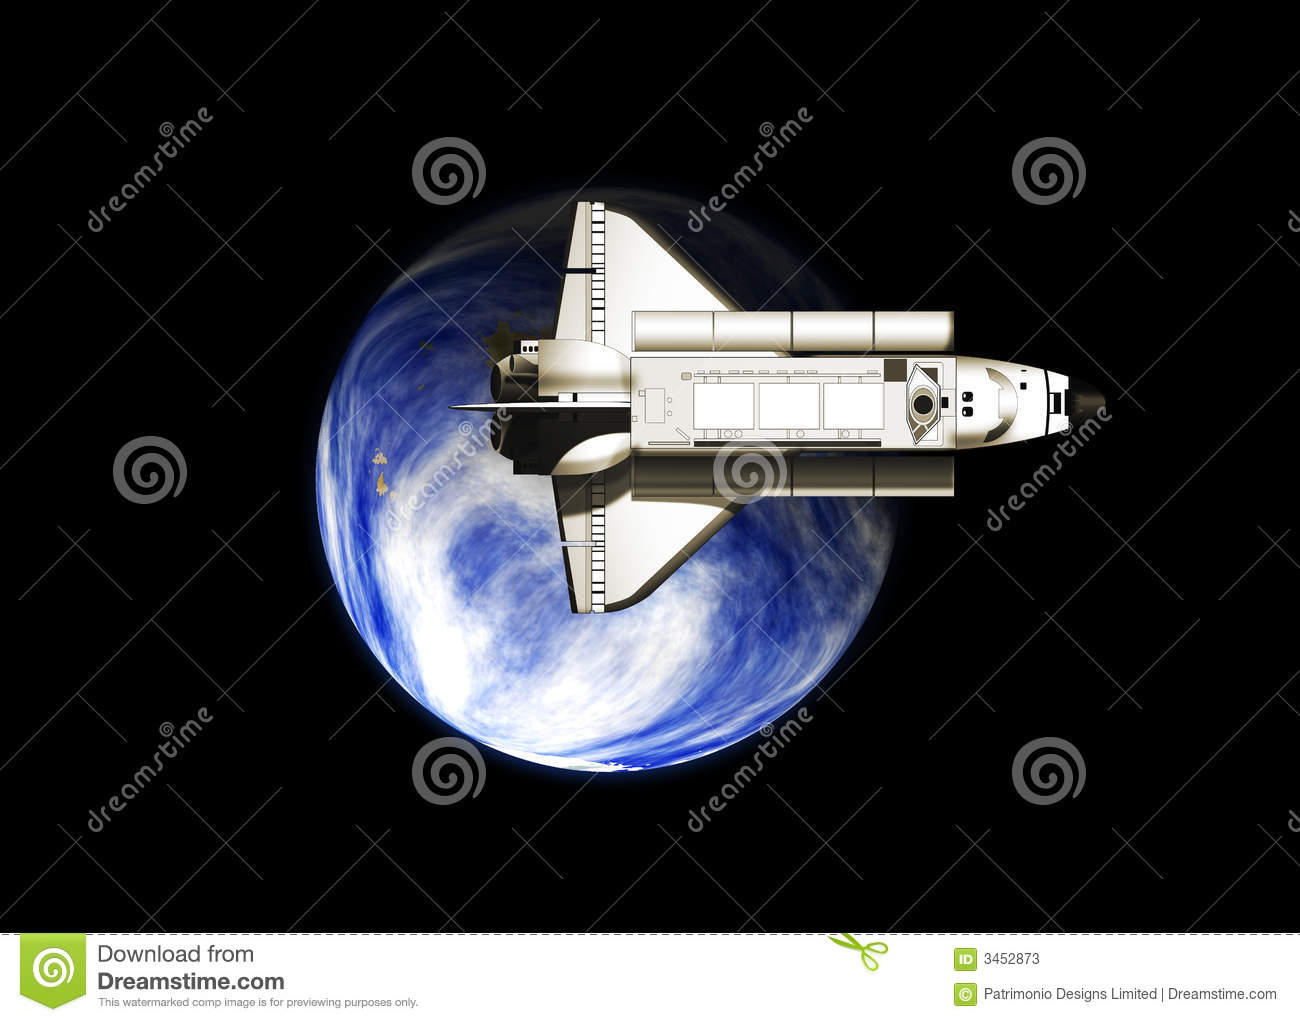 Space Shuttle And Earth Stock Photos - Image: 3452873